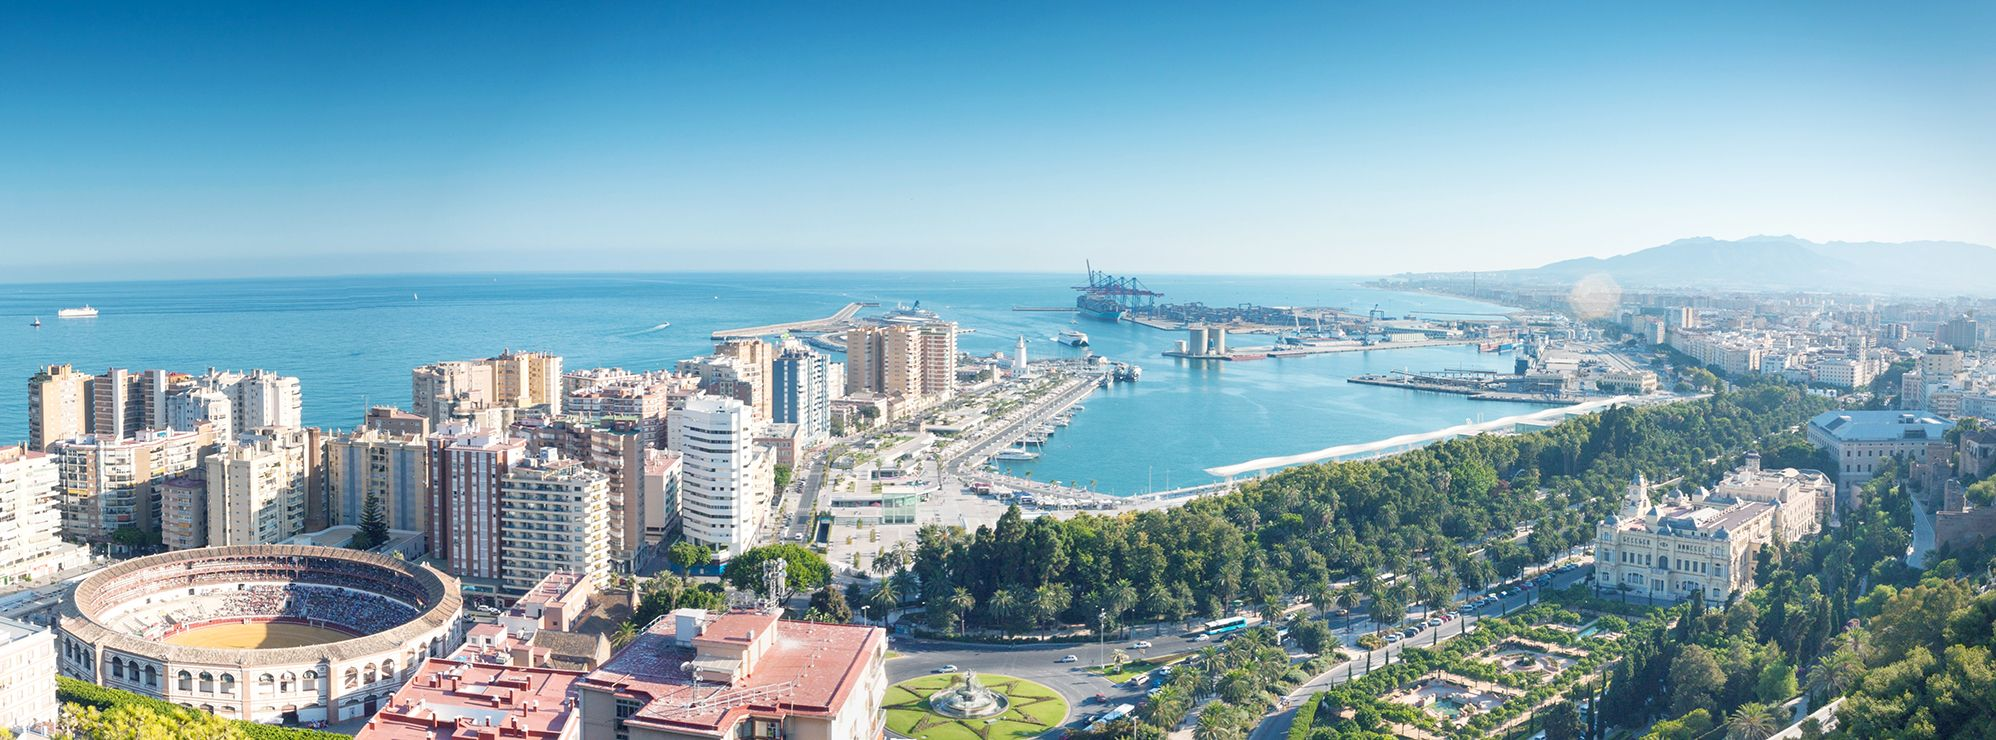 DMC Malaga - Corporate Events Management in Spain